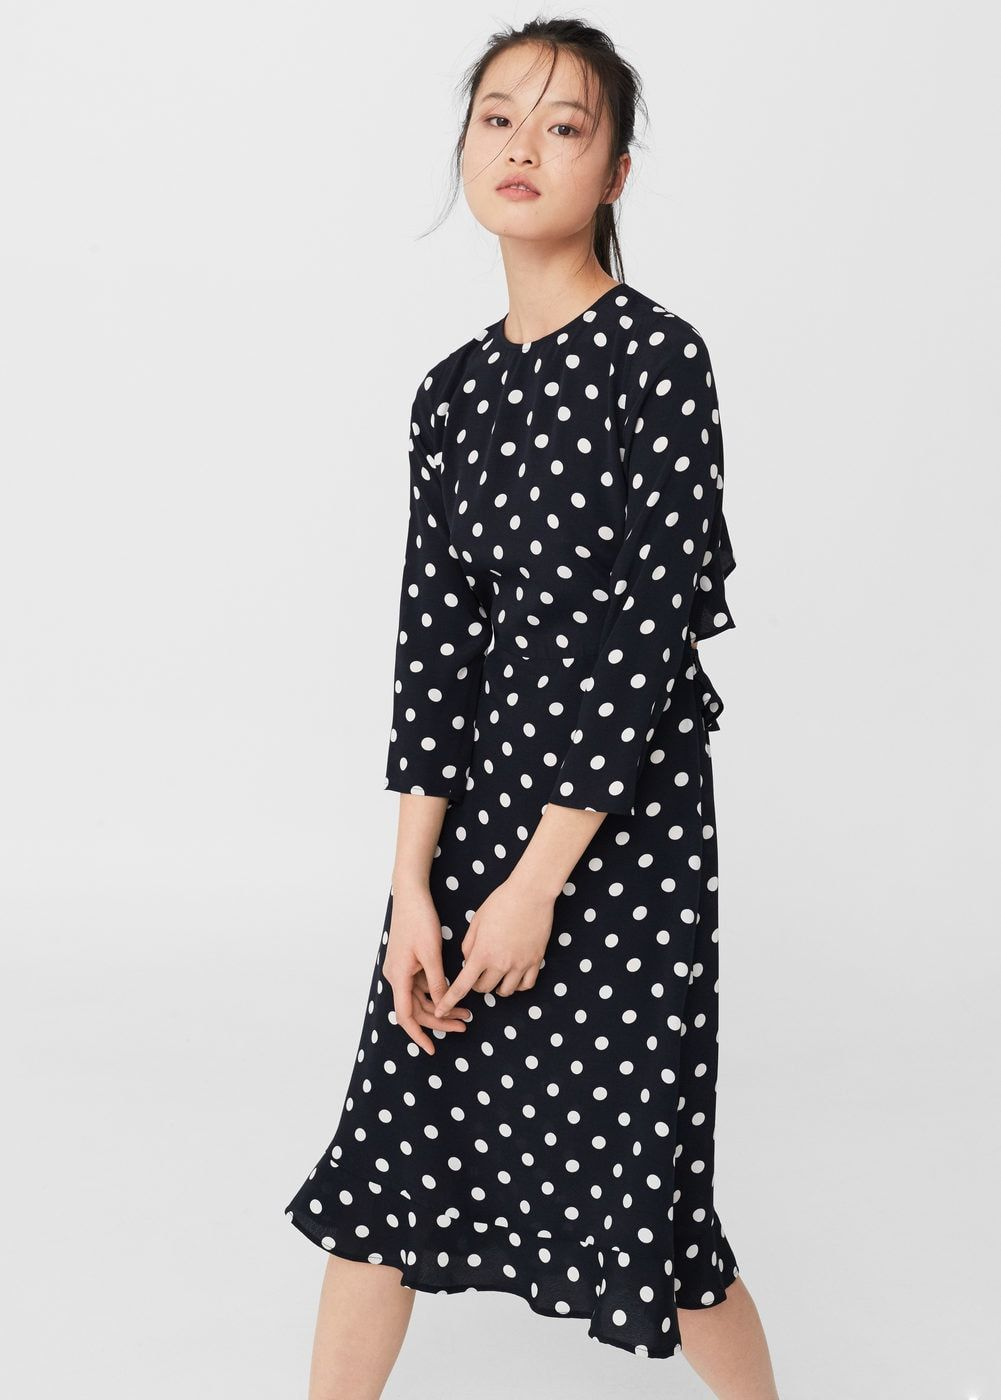 Polka-dot dress - Women | Pinterest | Mango, lange Ärmel und Saum